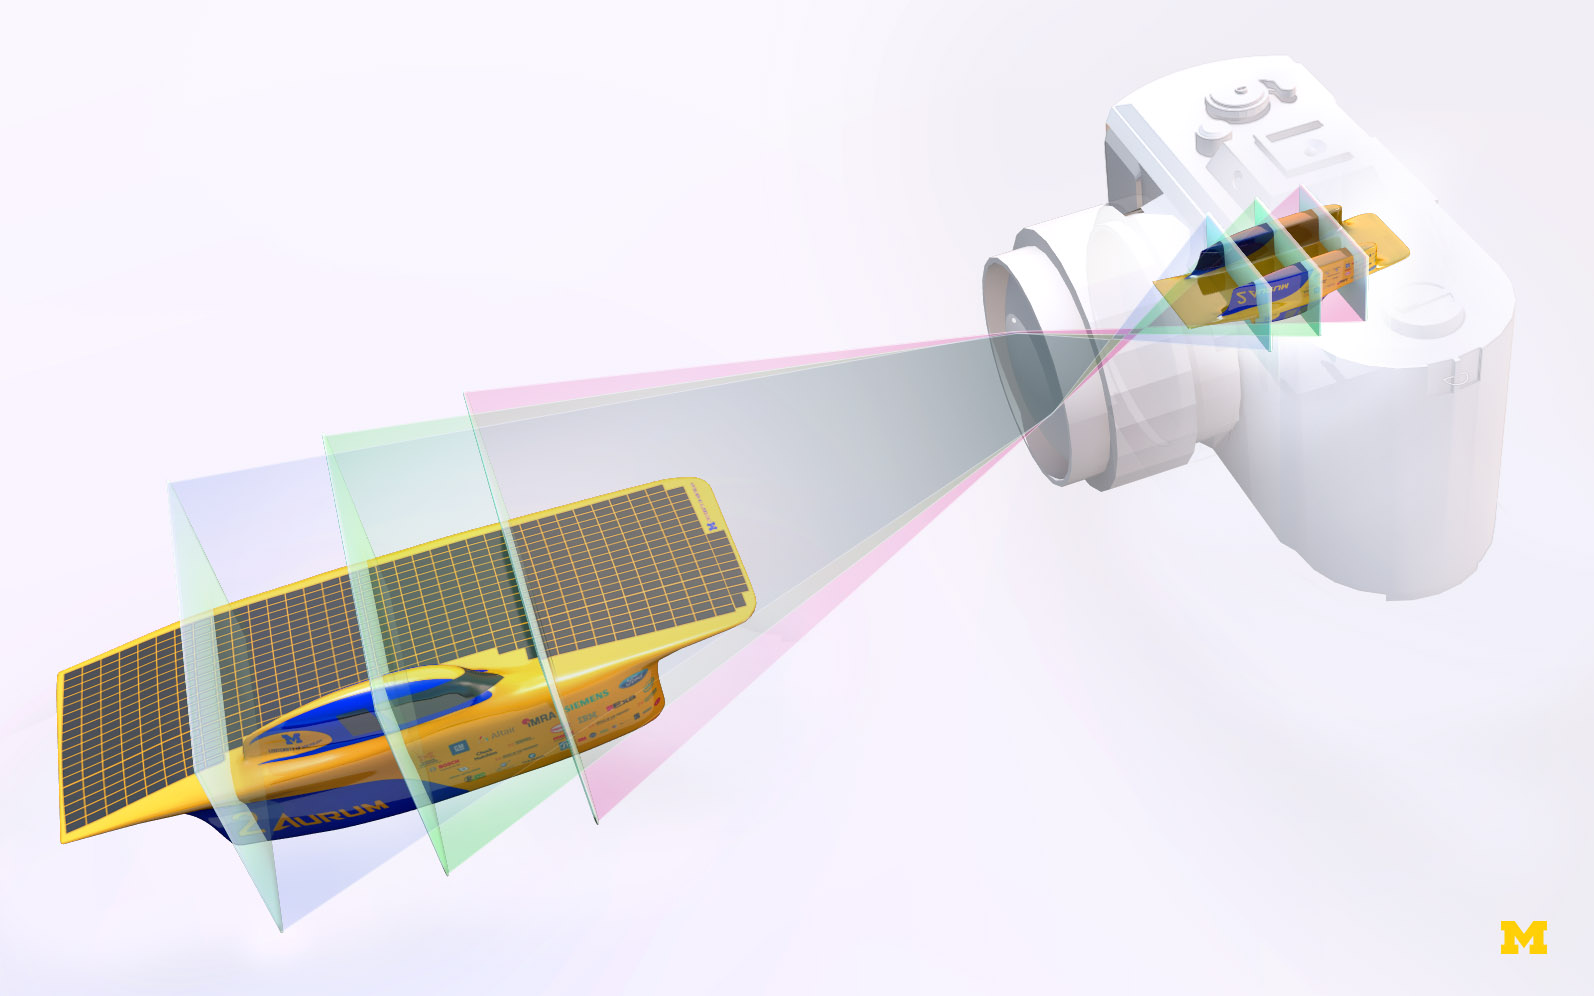 New Light Field Tech to use Transparent Sensor Layers instead of Microlenses (picture: Stephen Alvey/Michigan Engineering)